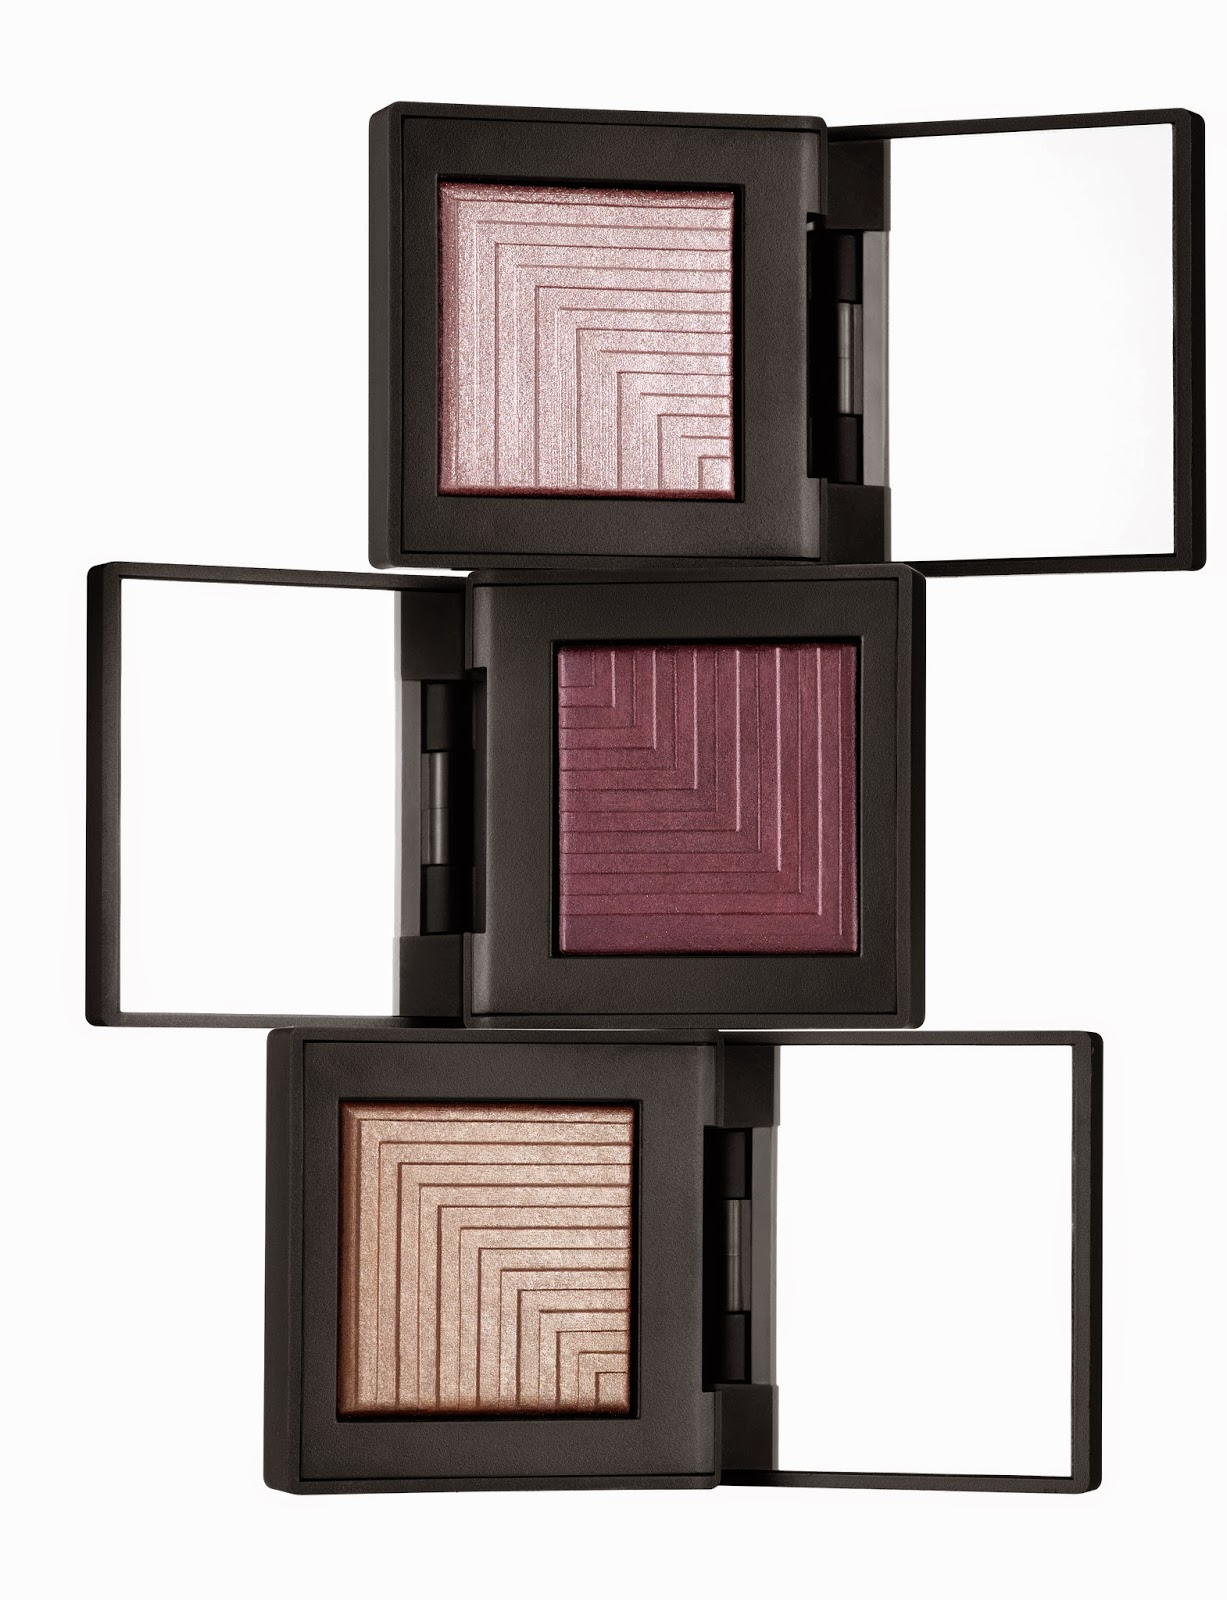 dual-intensity eyeshadow nars